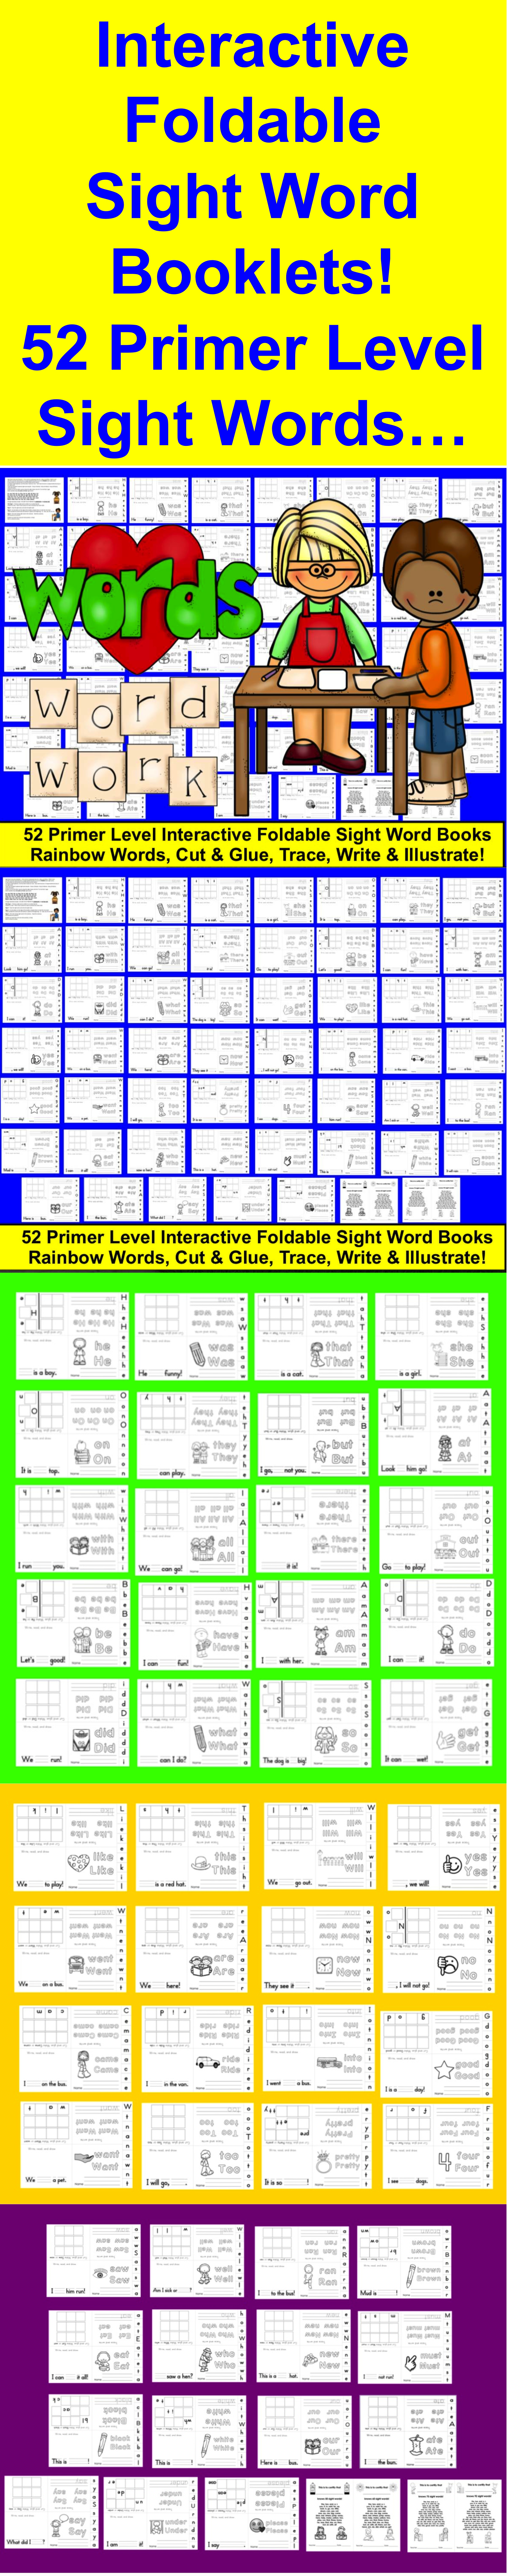 Sight Words Booklets Primer Interactive Amp Foldable